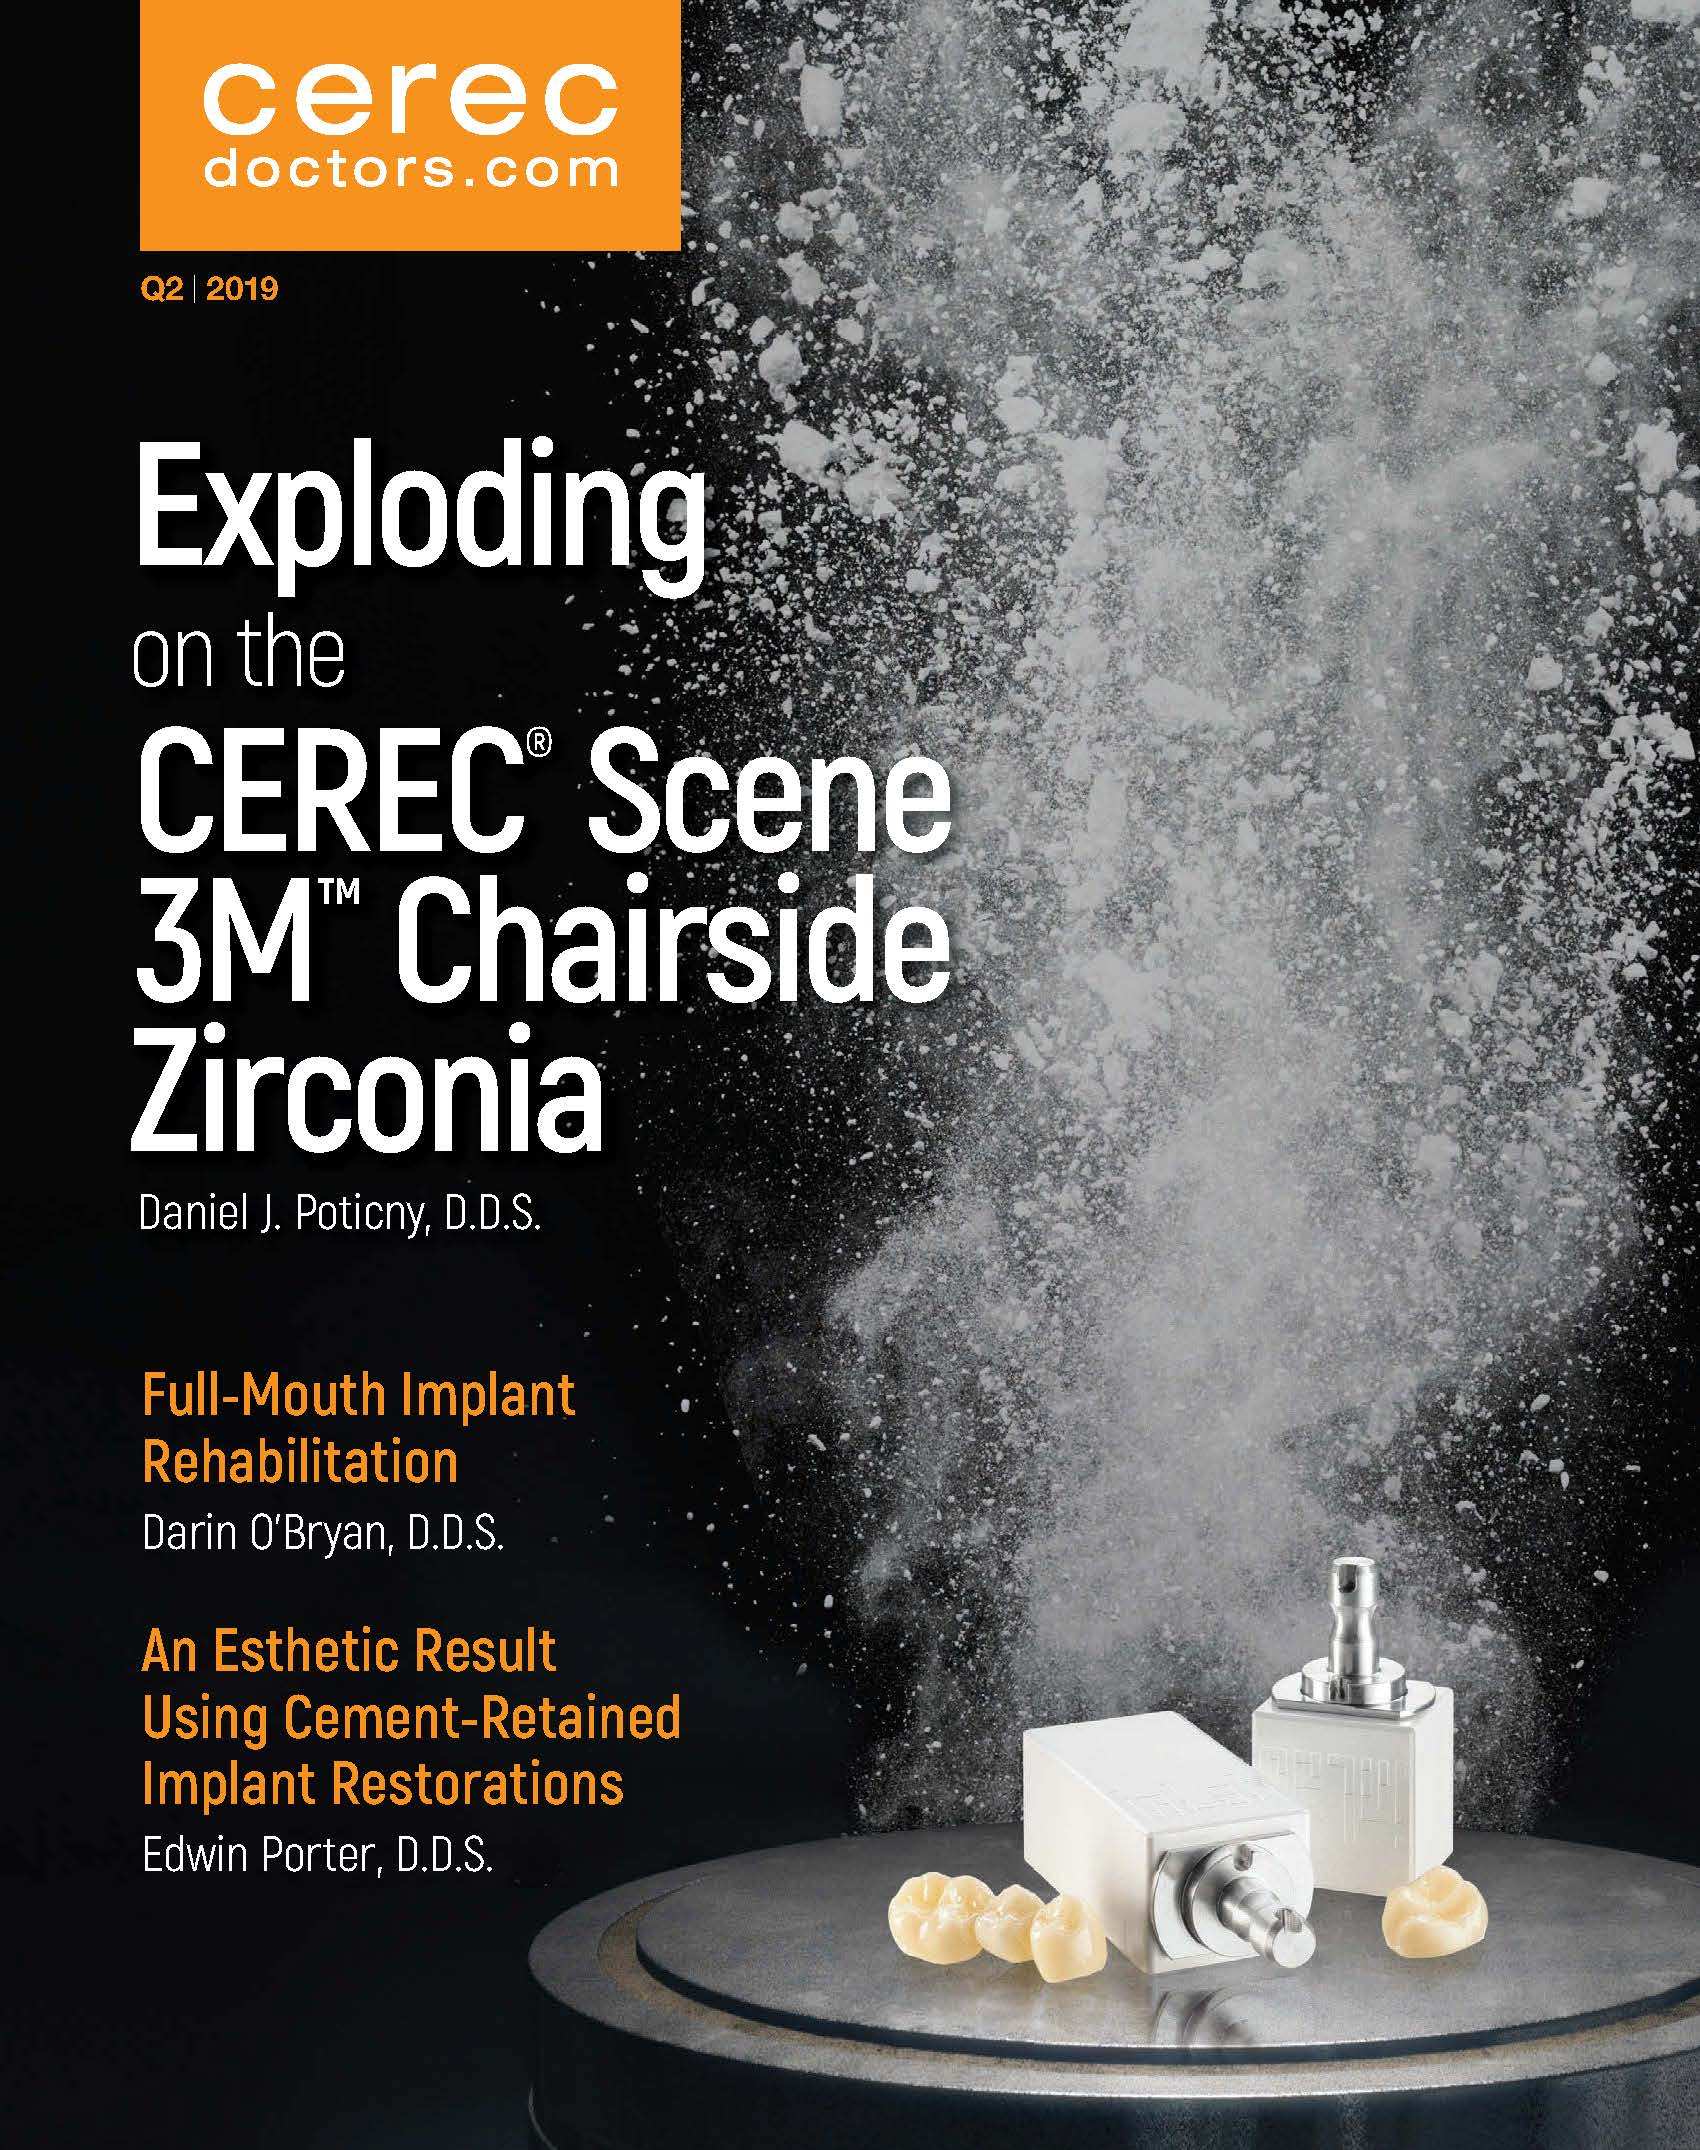 CEREC Magazine - Q2 2019